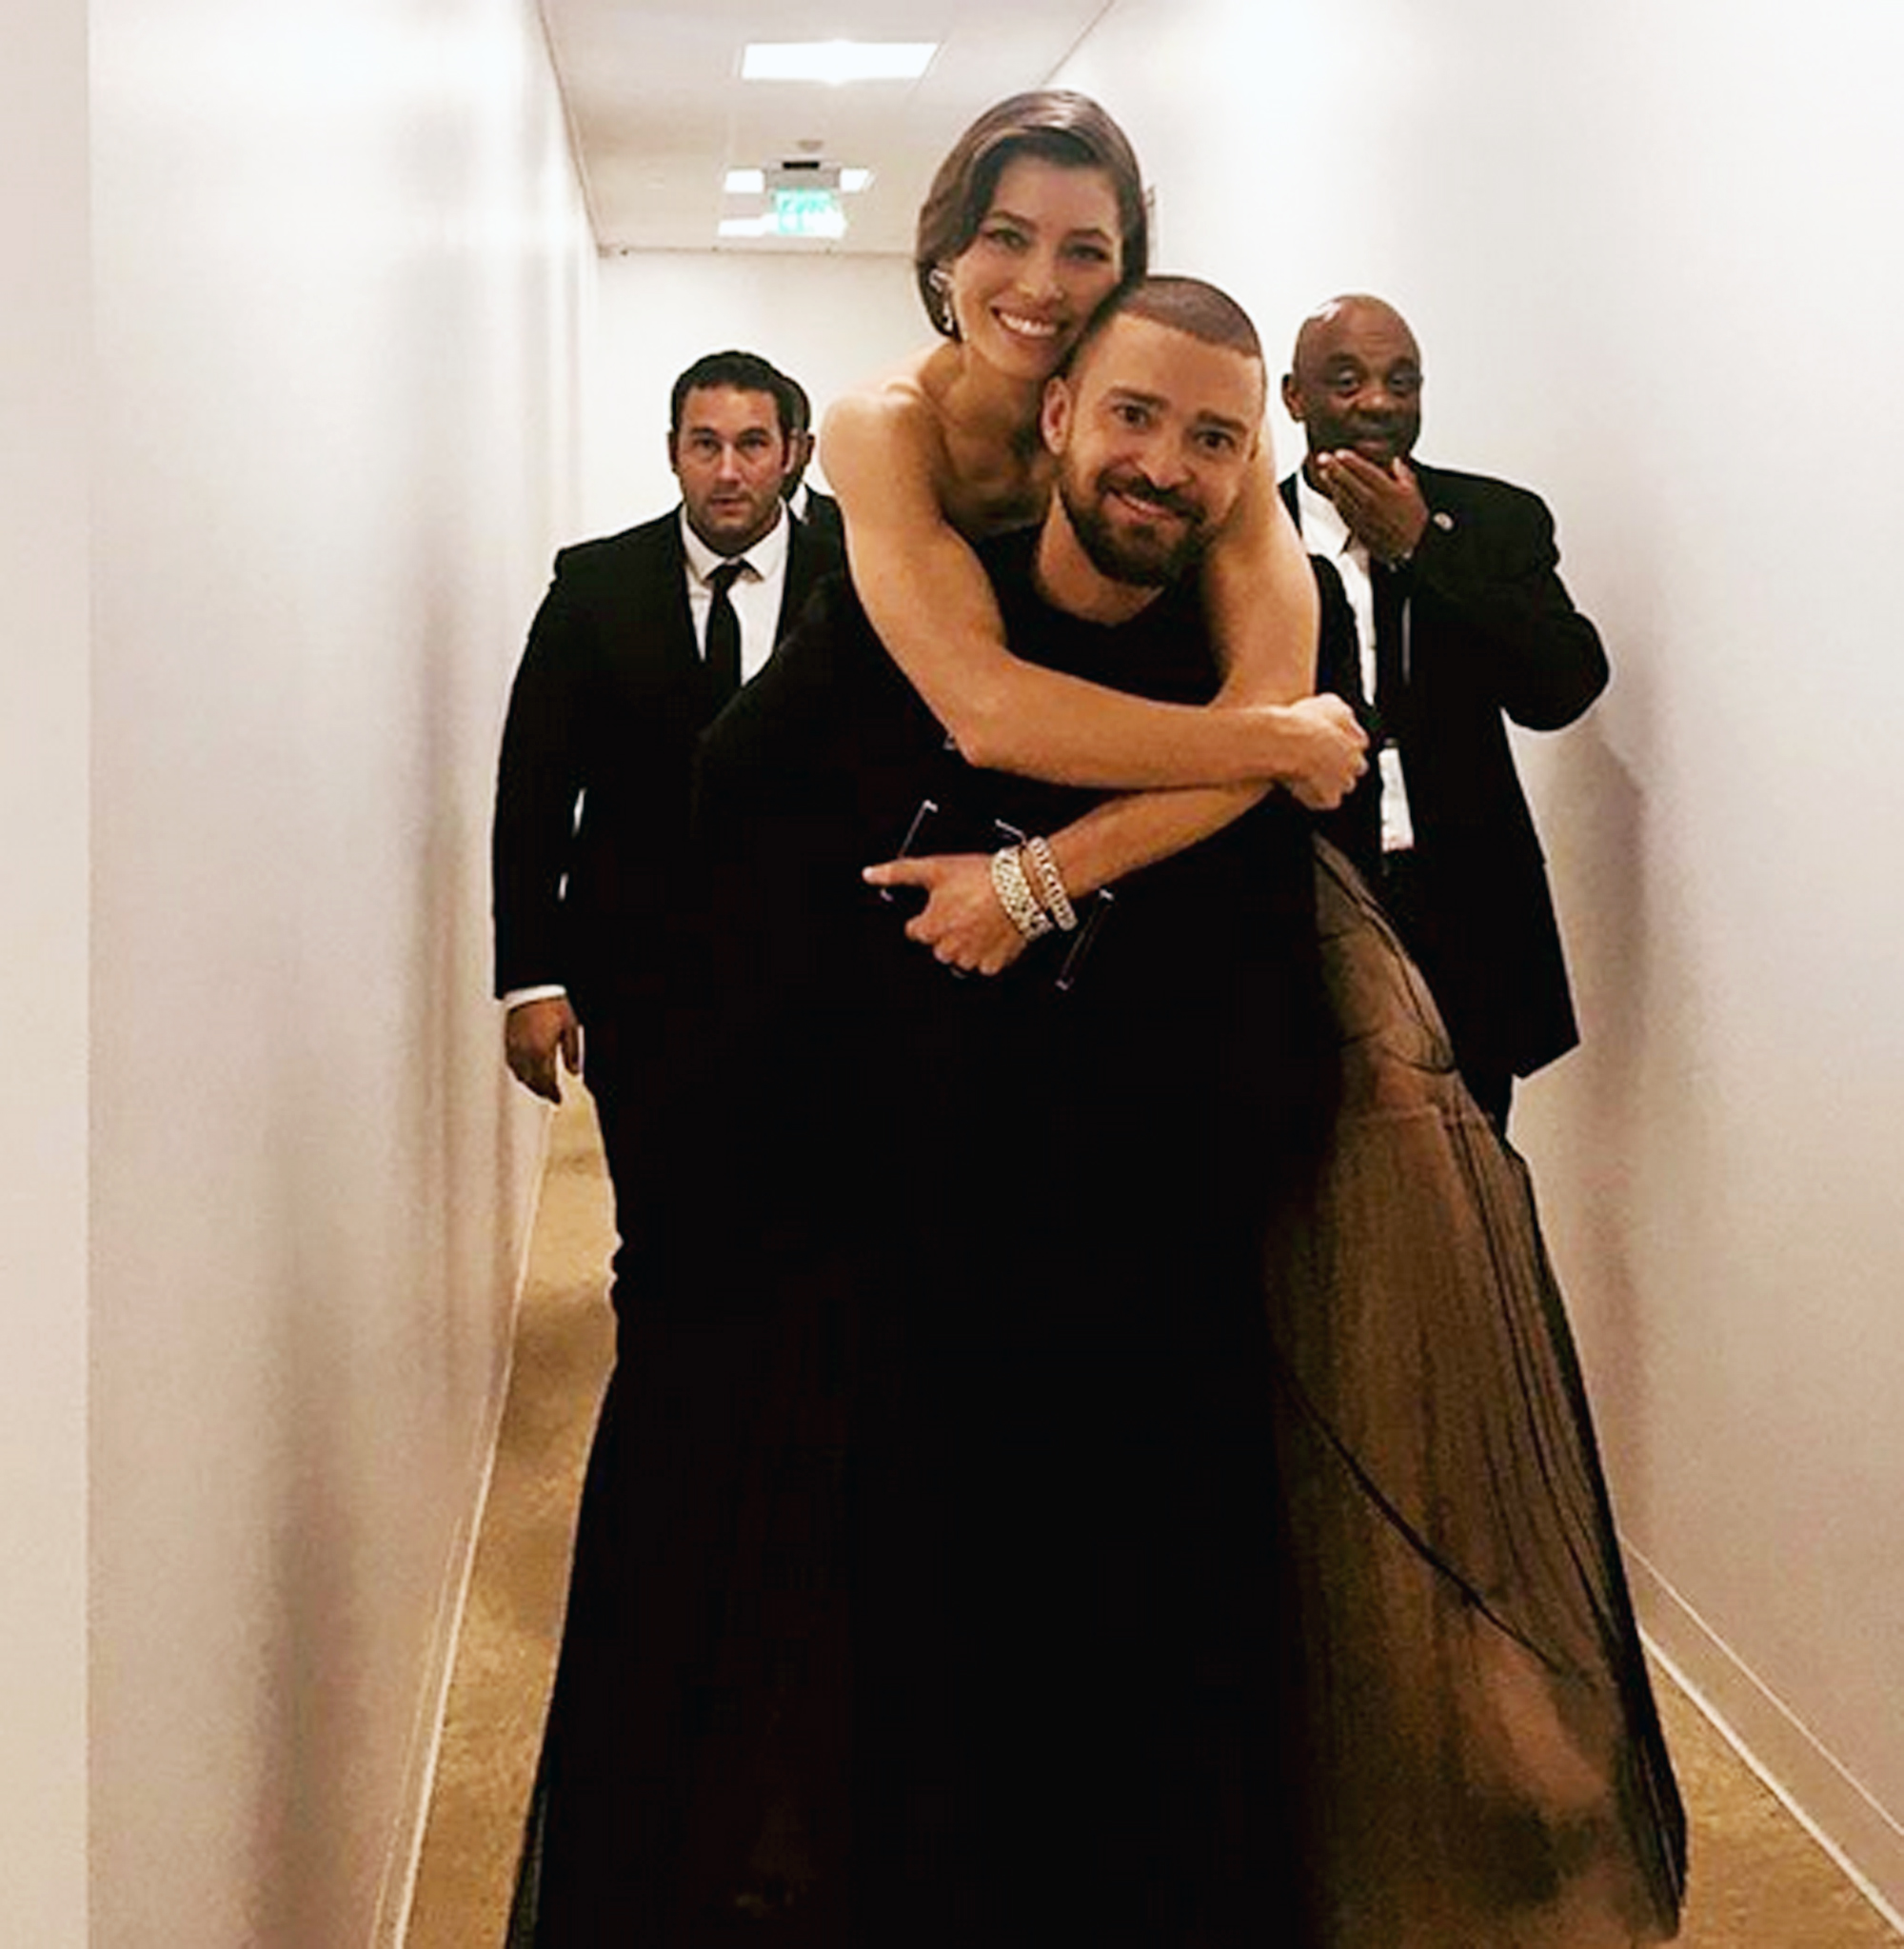 https://www.instagram.com/p/Bdtzo-XlXyz/?hl=en&taken-by=jessicabiel jessicabiel I give my ride to the #goldenglobes after party a very enthusiastic 5 ?? rating Source: Jessica Biel Instagram